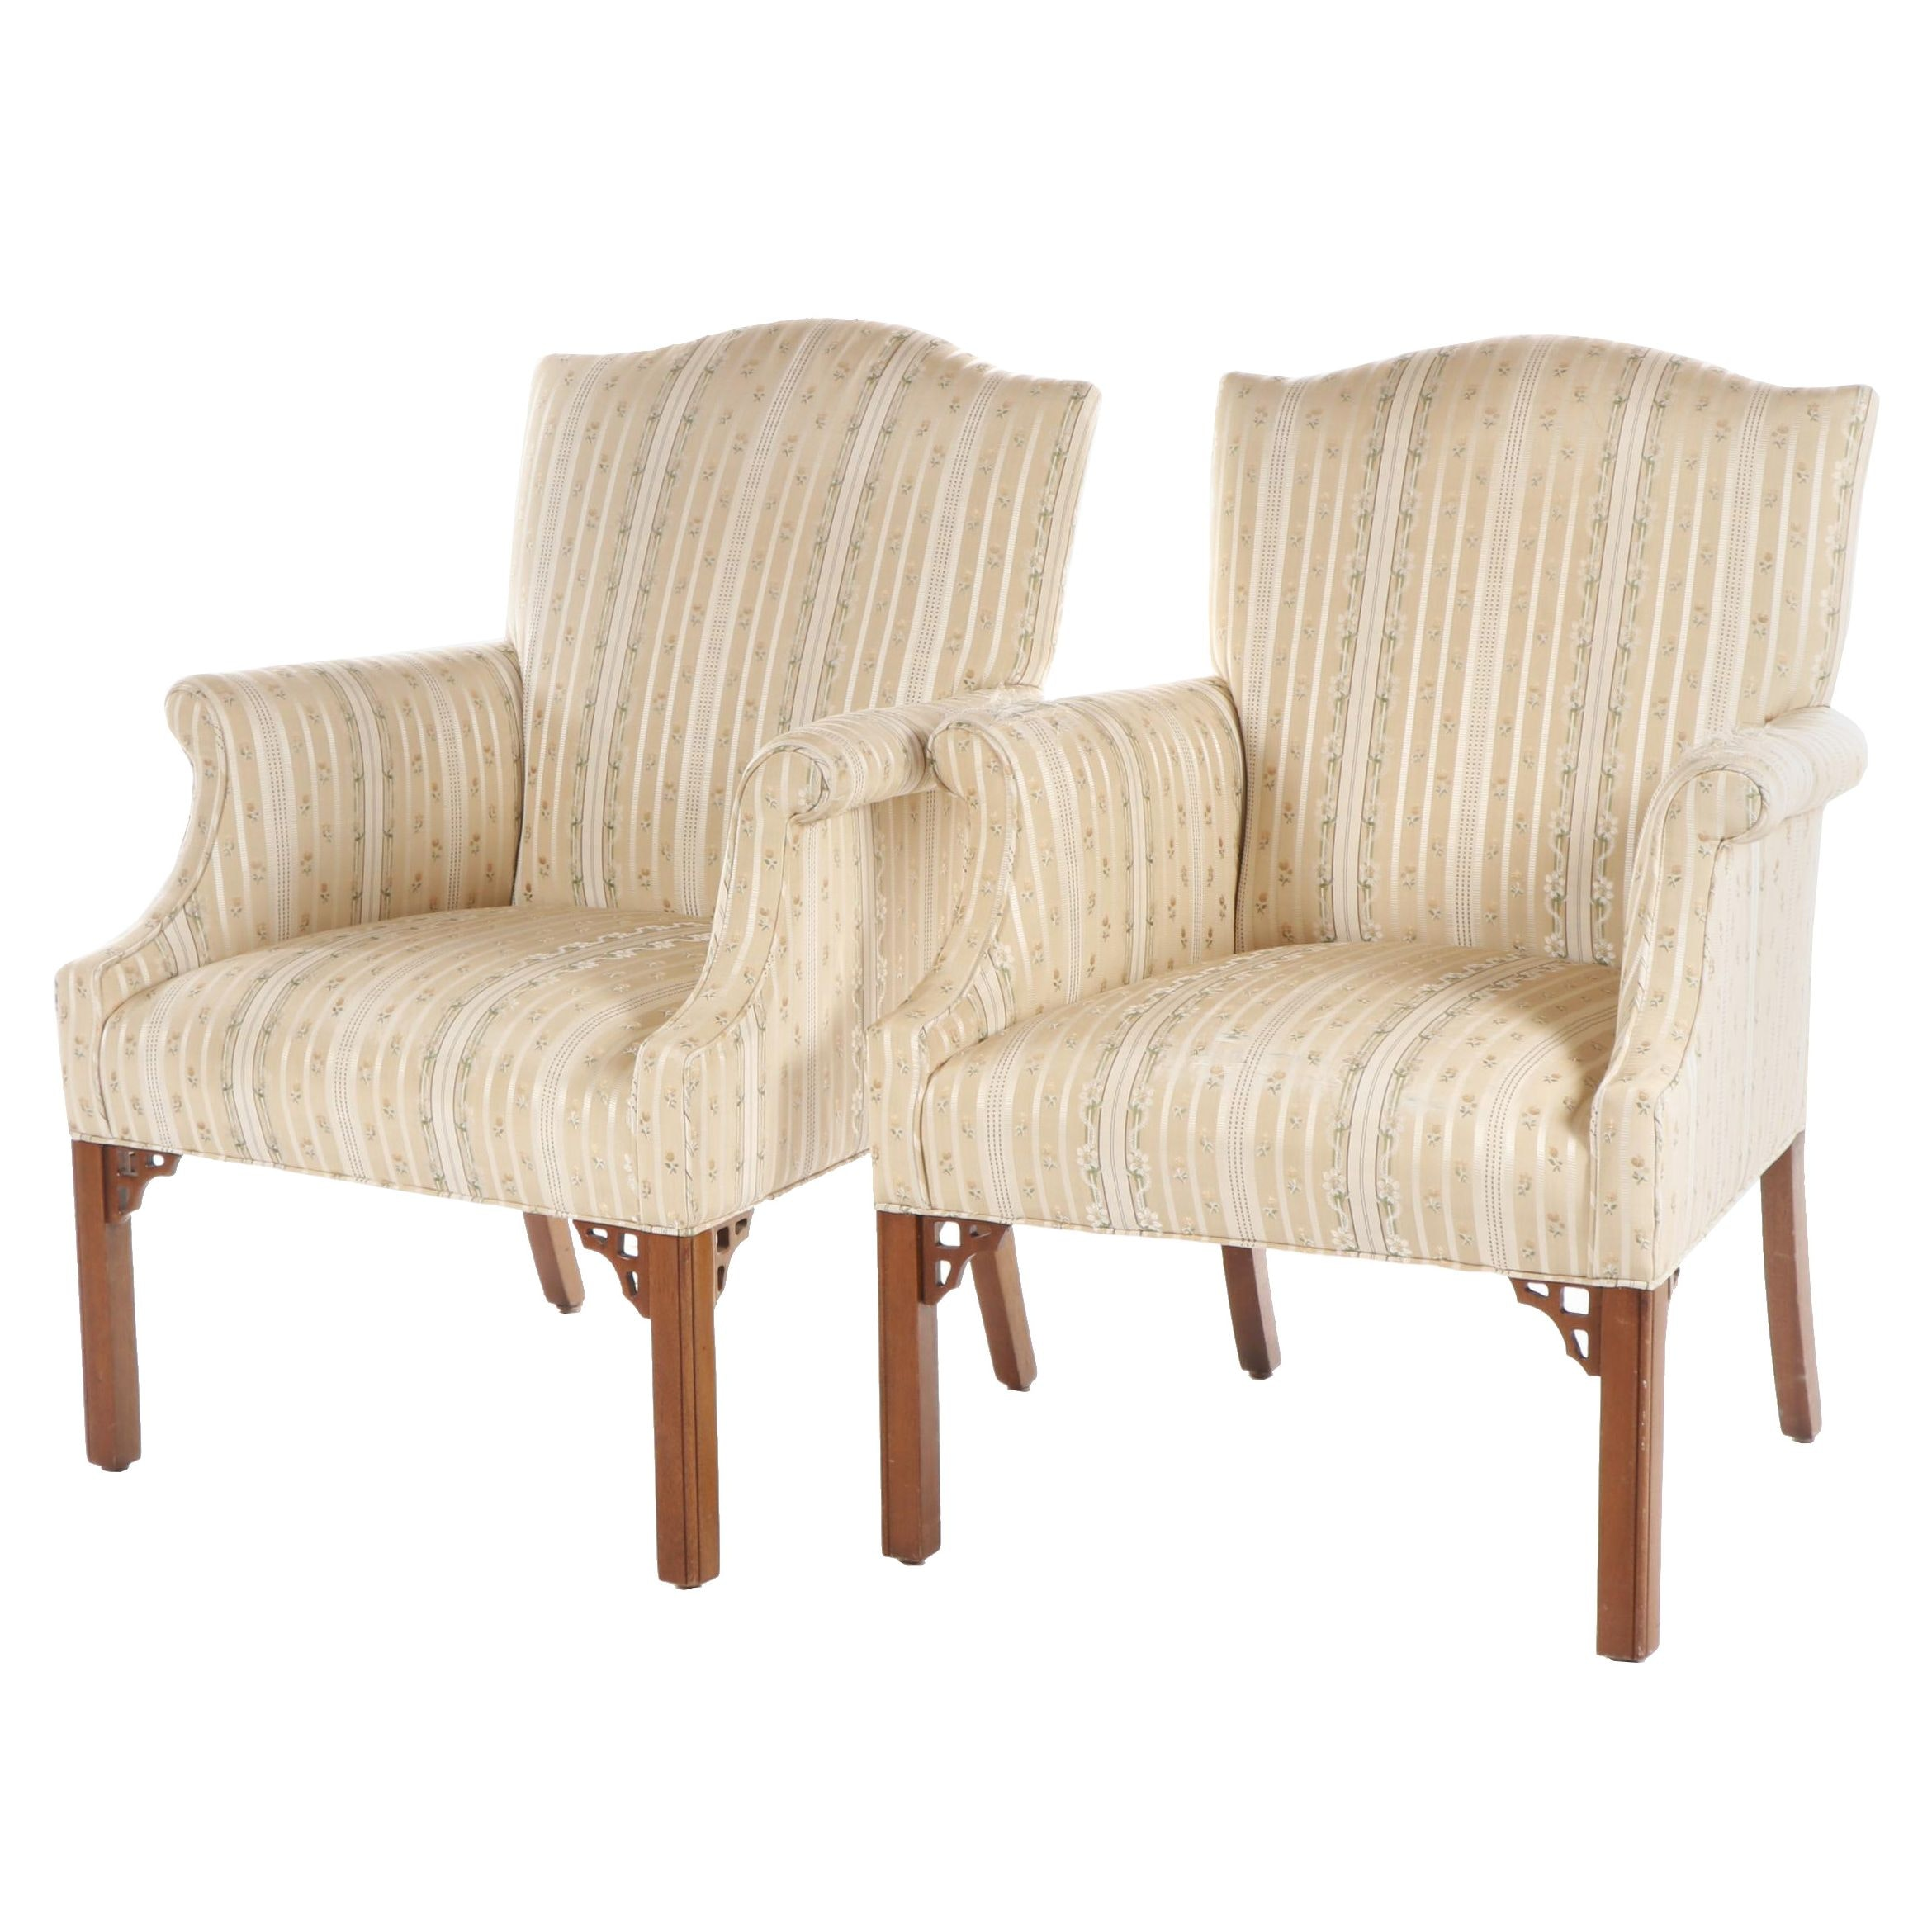 Pair of Wingback Floral Upholstered Armchairs